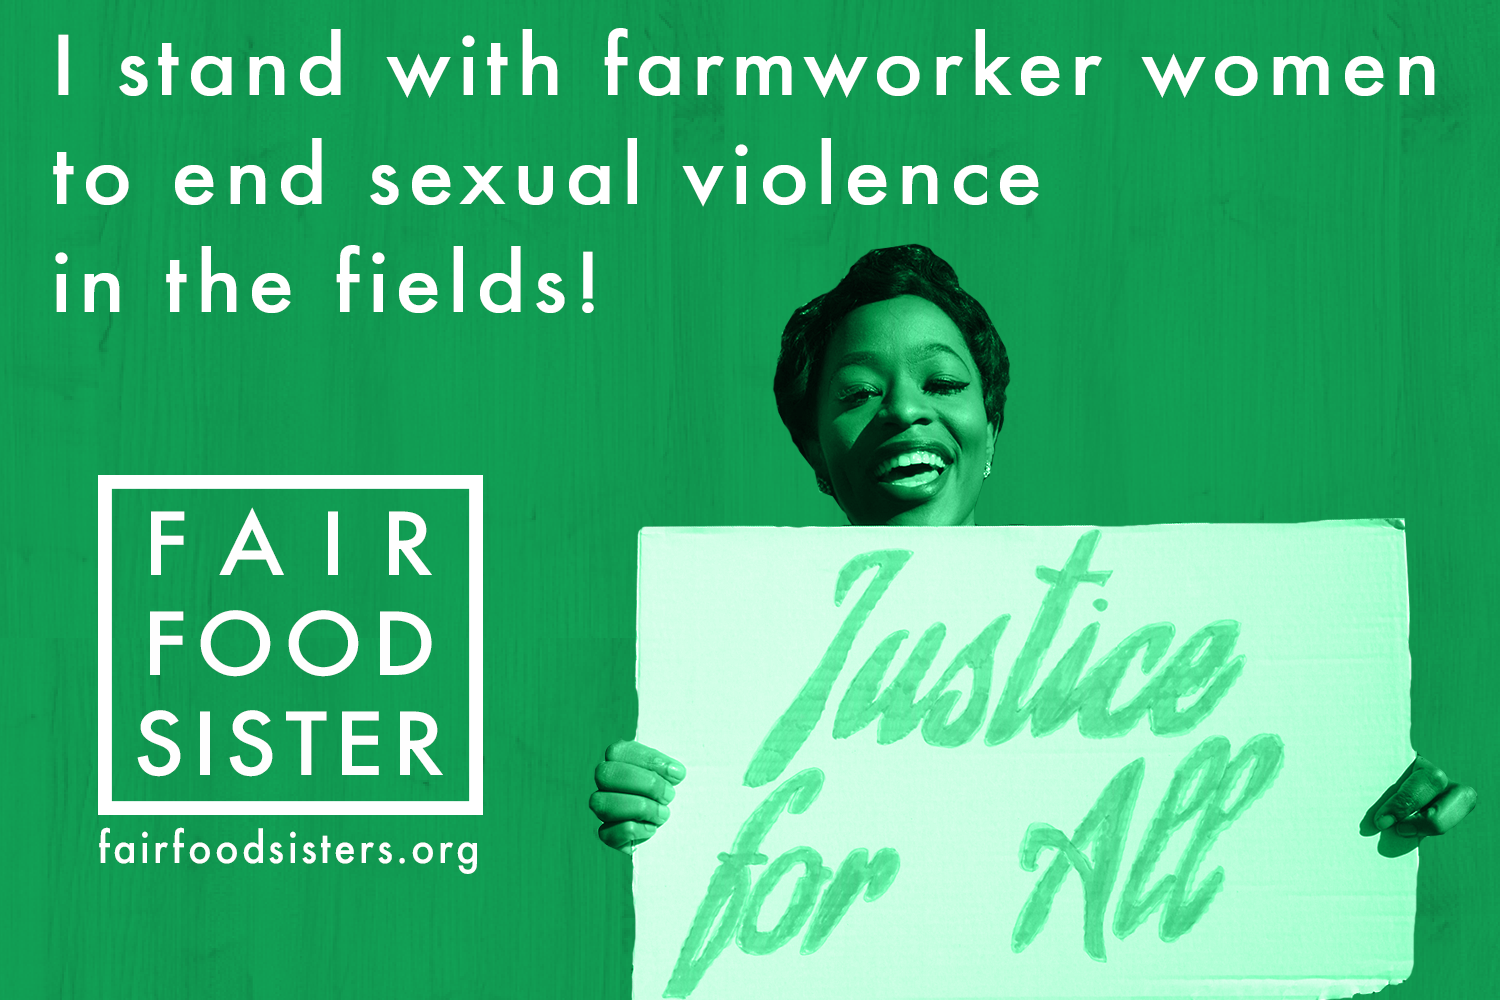 Click to Tweet - .@Wendys: 80% of farmworker women face sexual violence at work. Be a part of the solution! #FairFoodSister